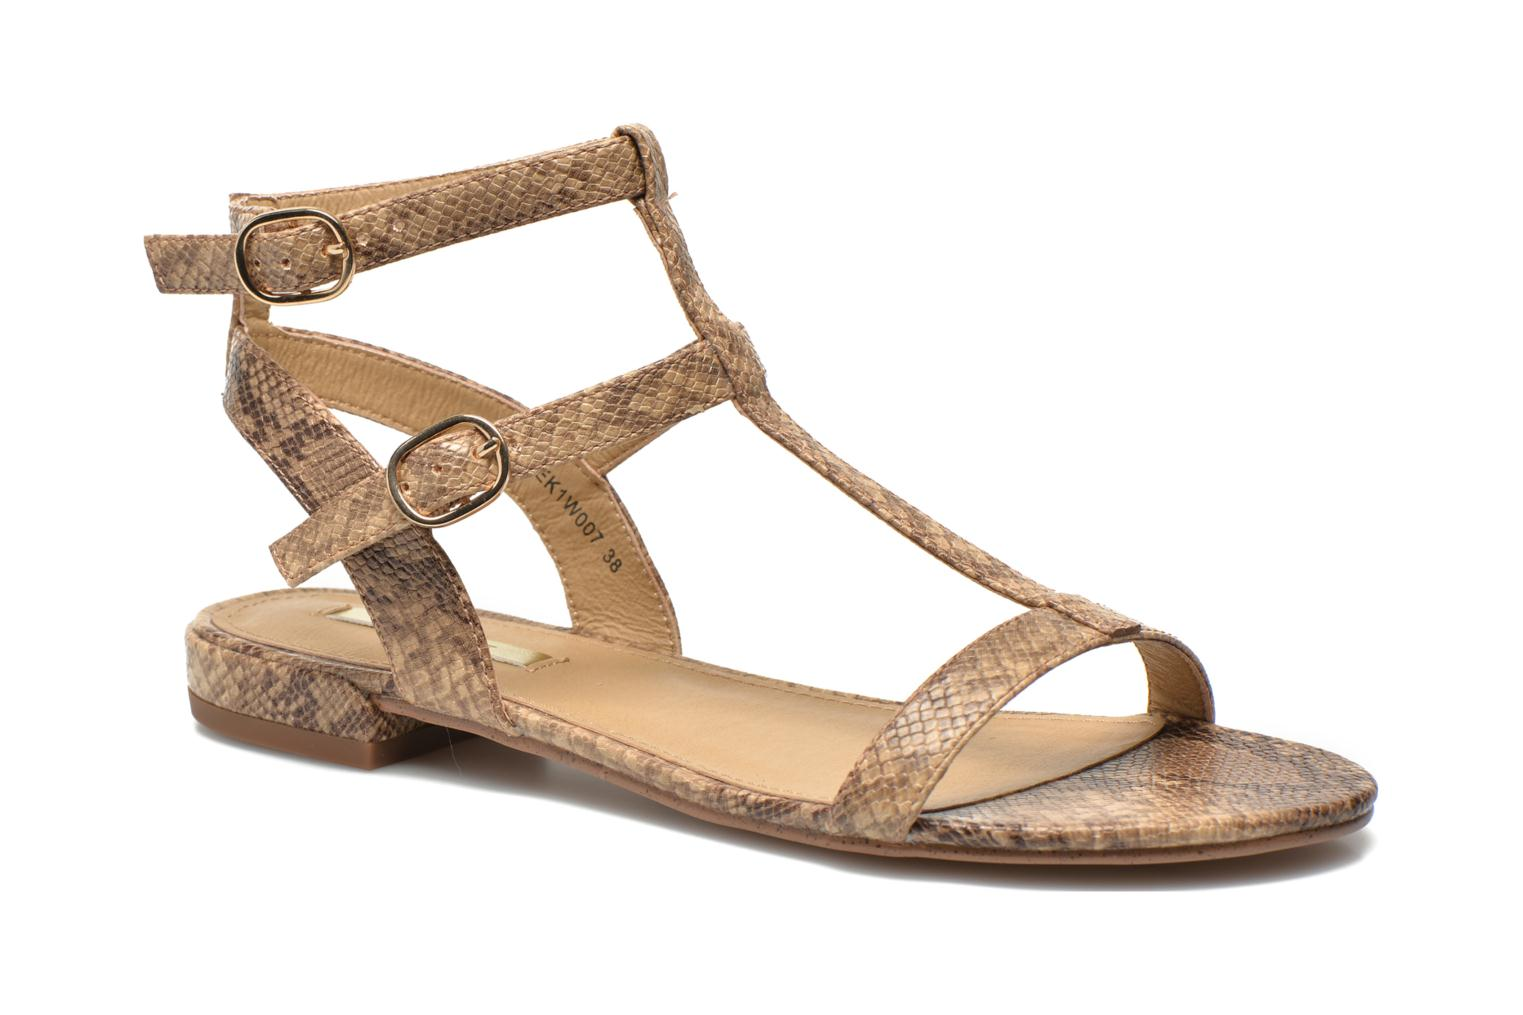 Marques Chaussure femme Esprit femme Aely Bis Sandal Toffee